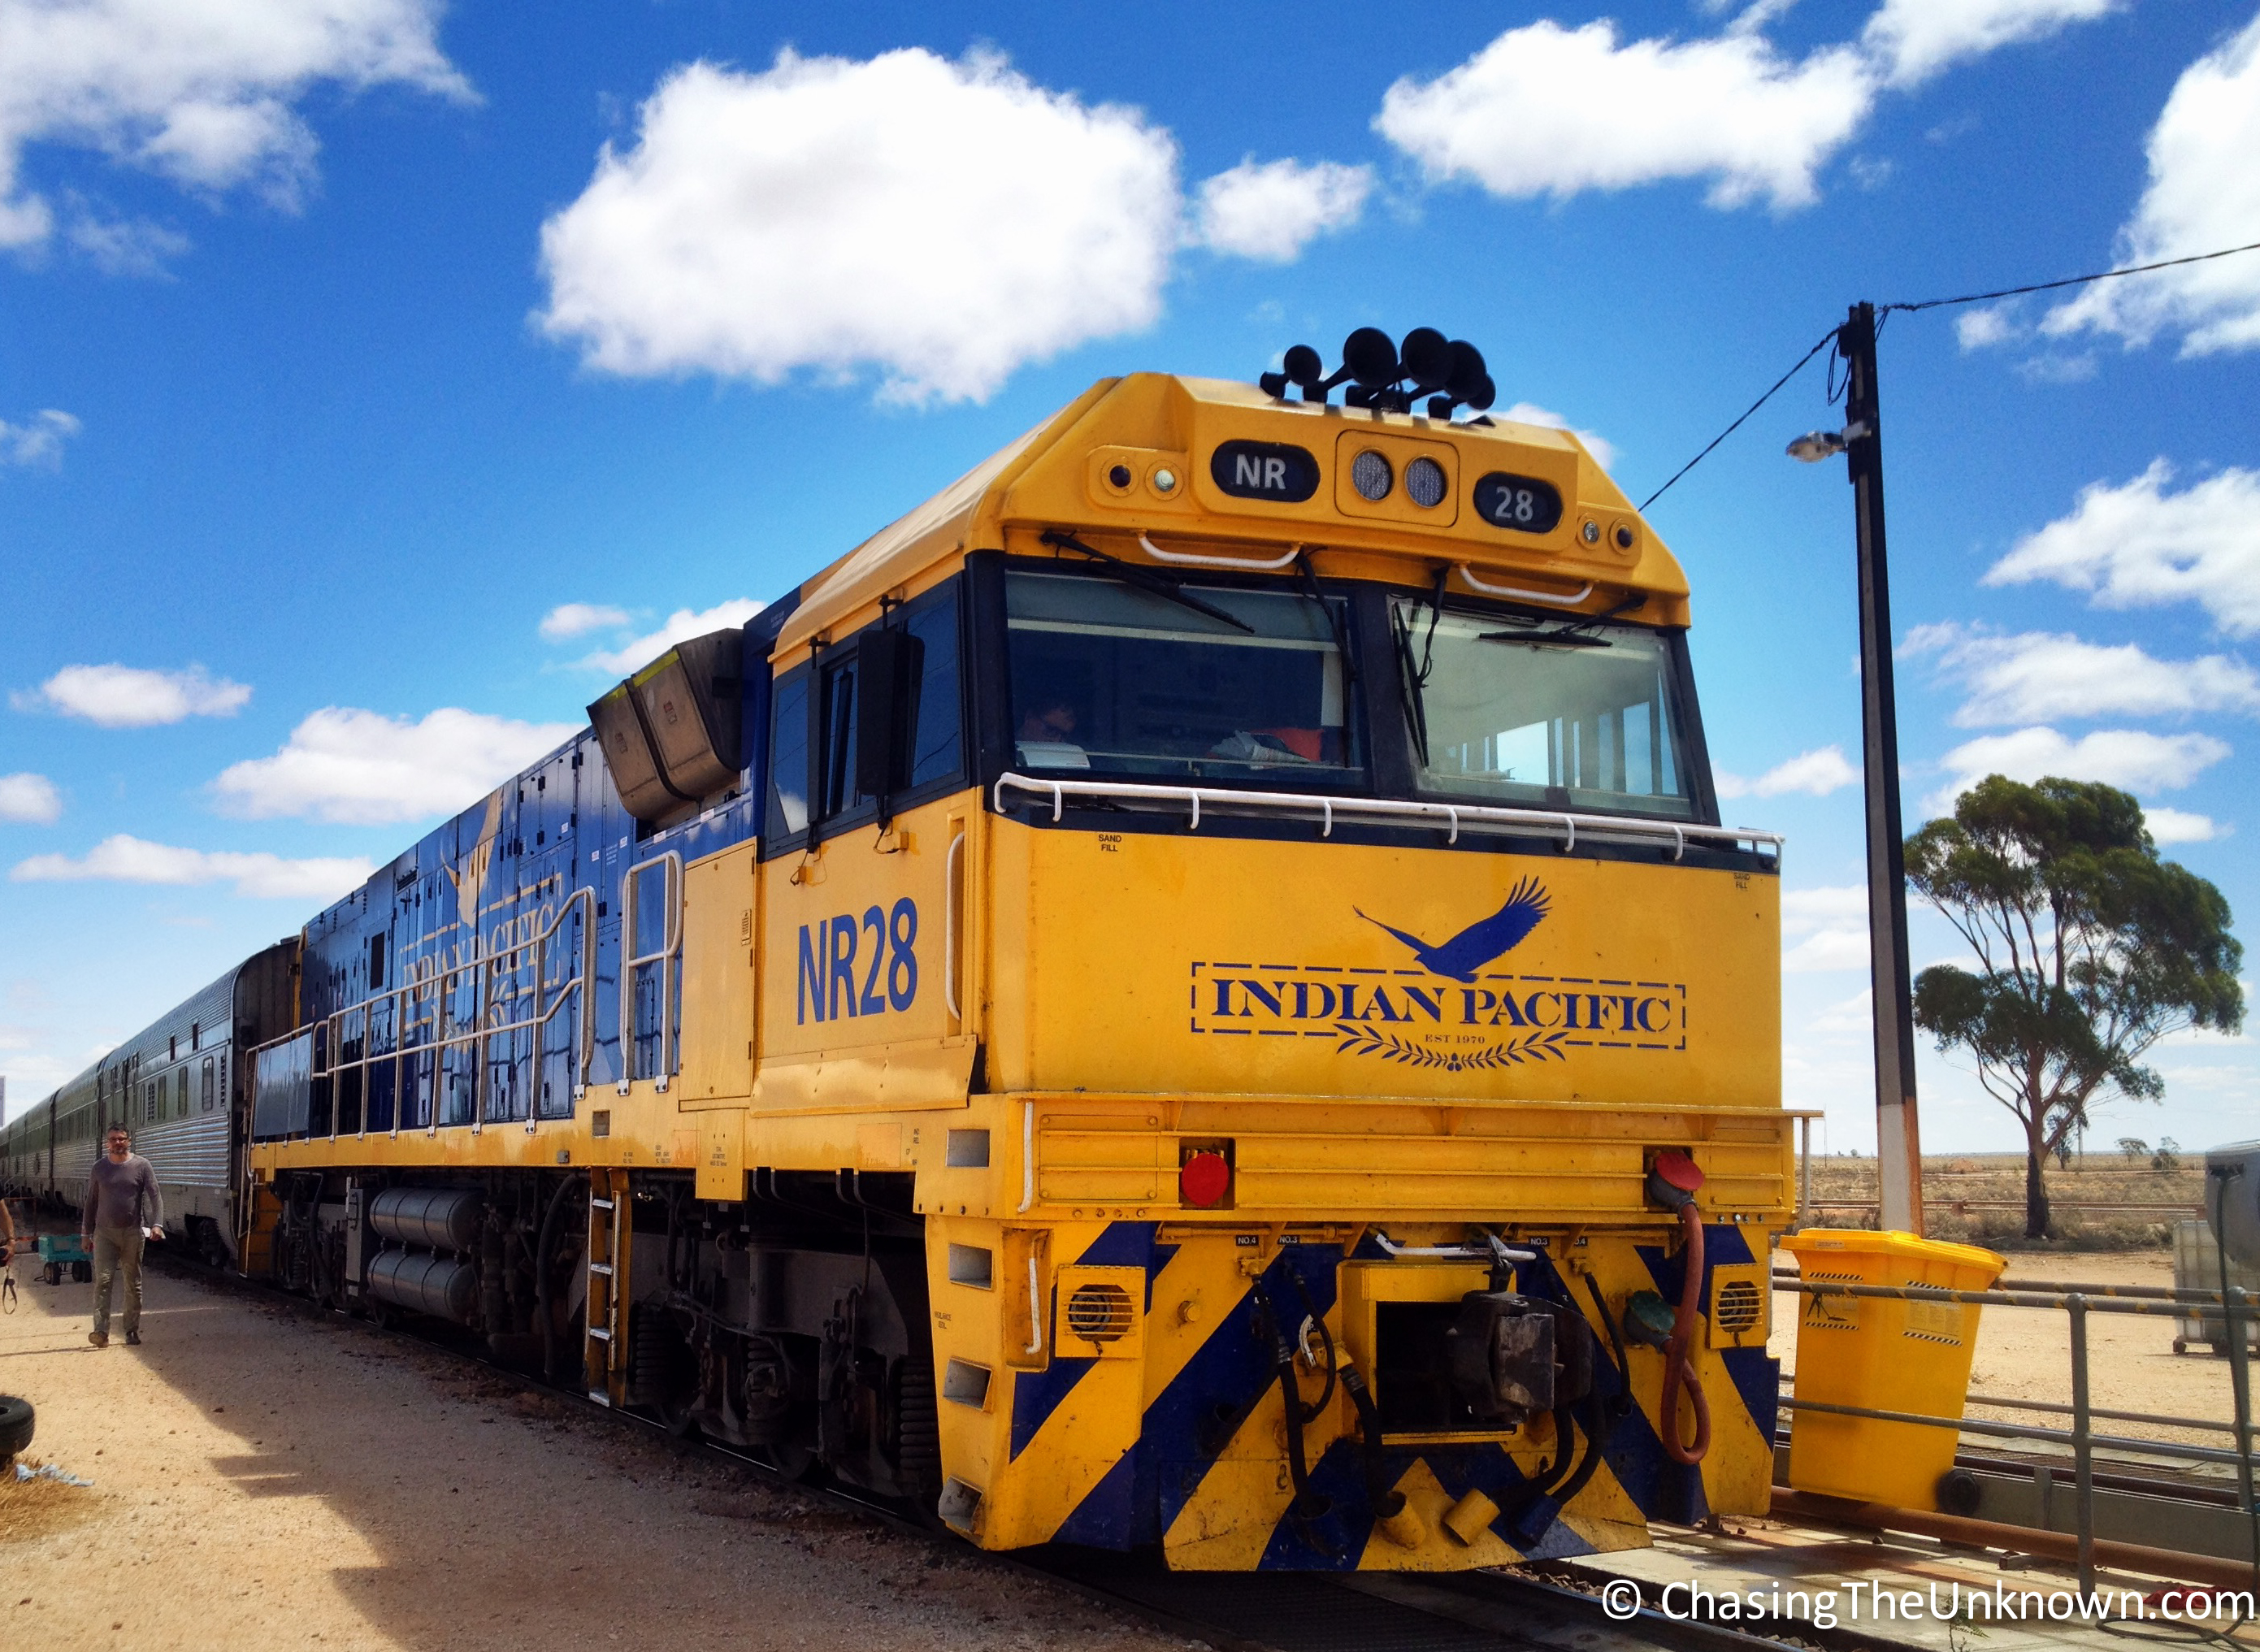 Riding the Indian Pacific from Perth to Adelaide